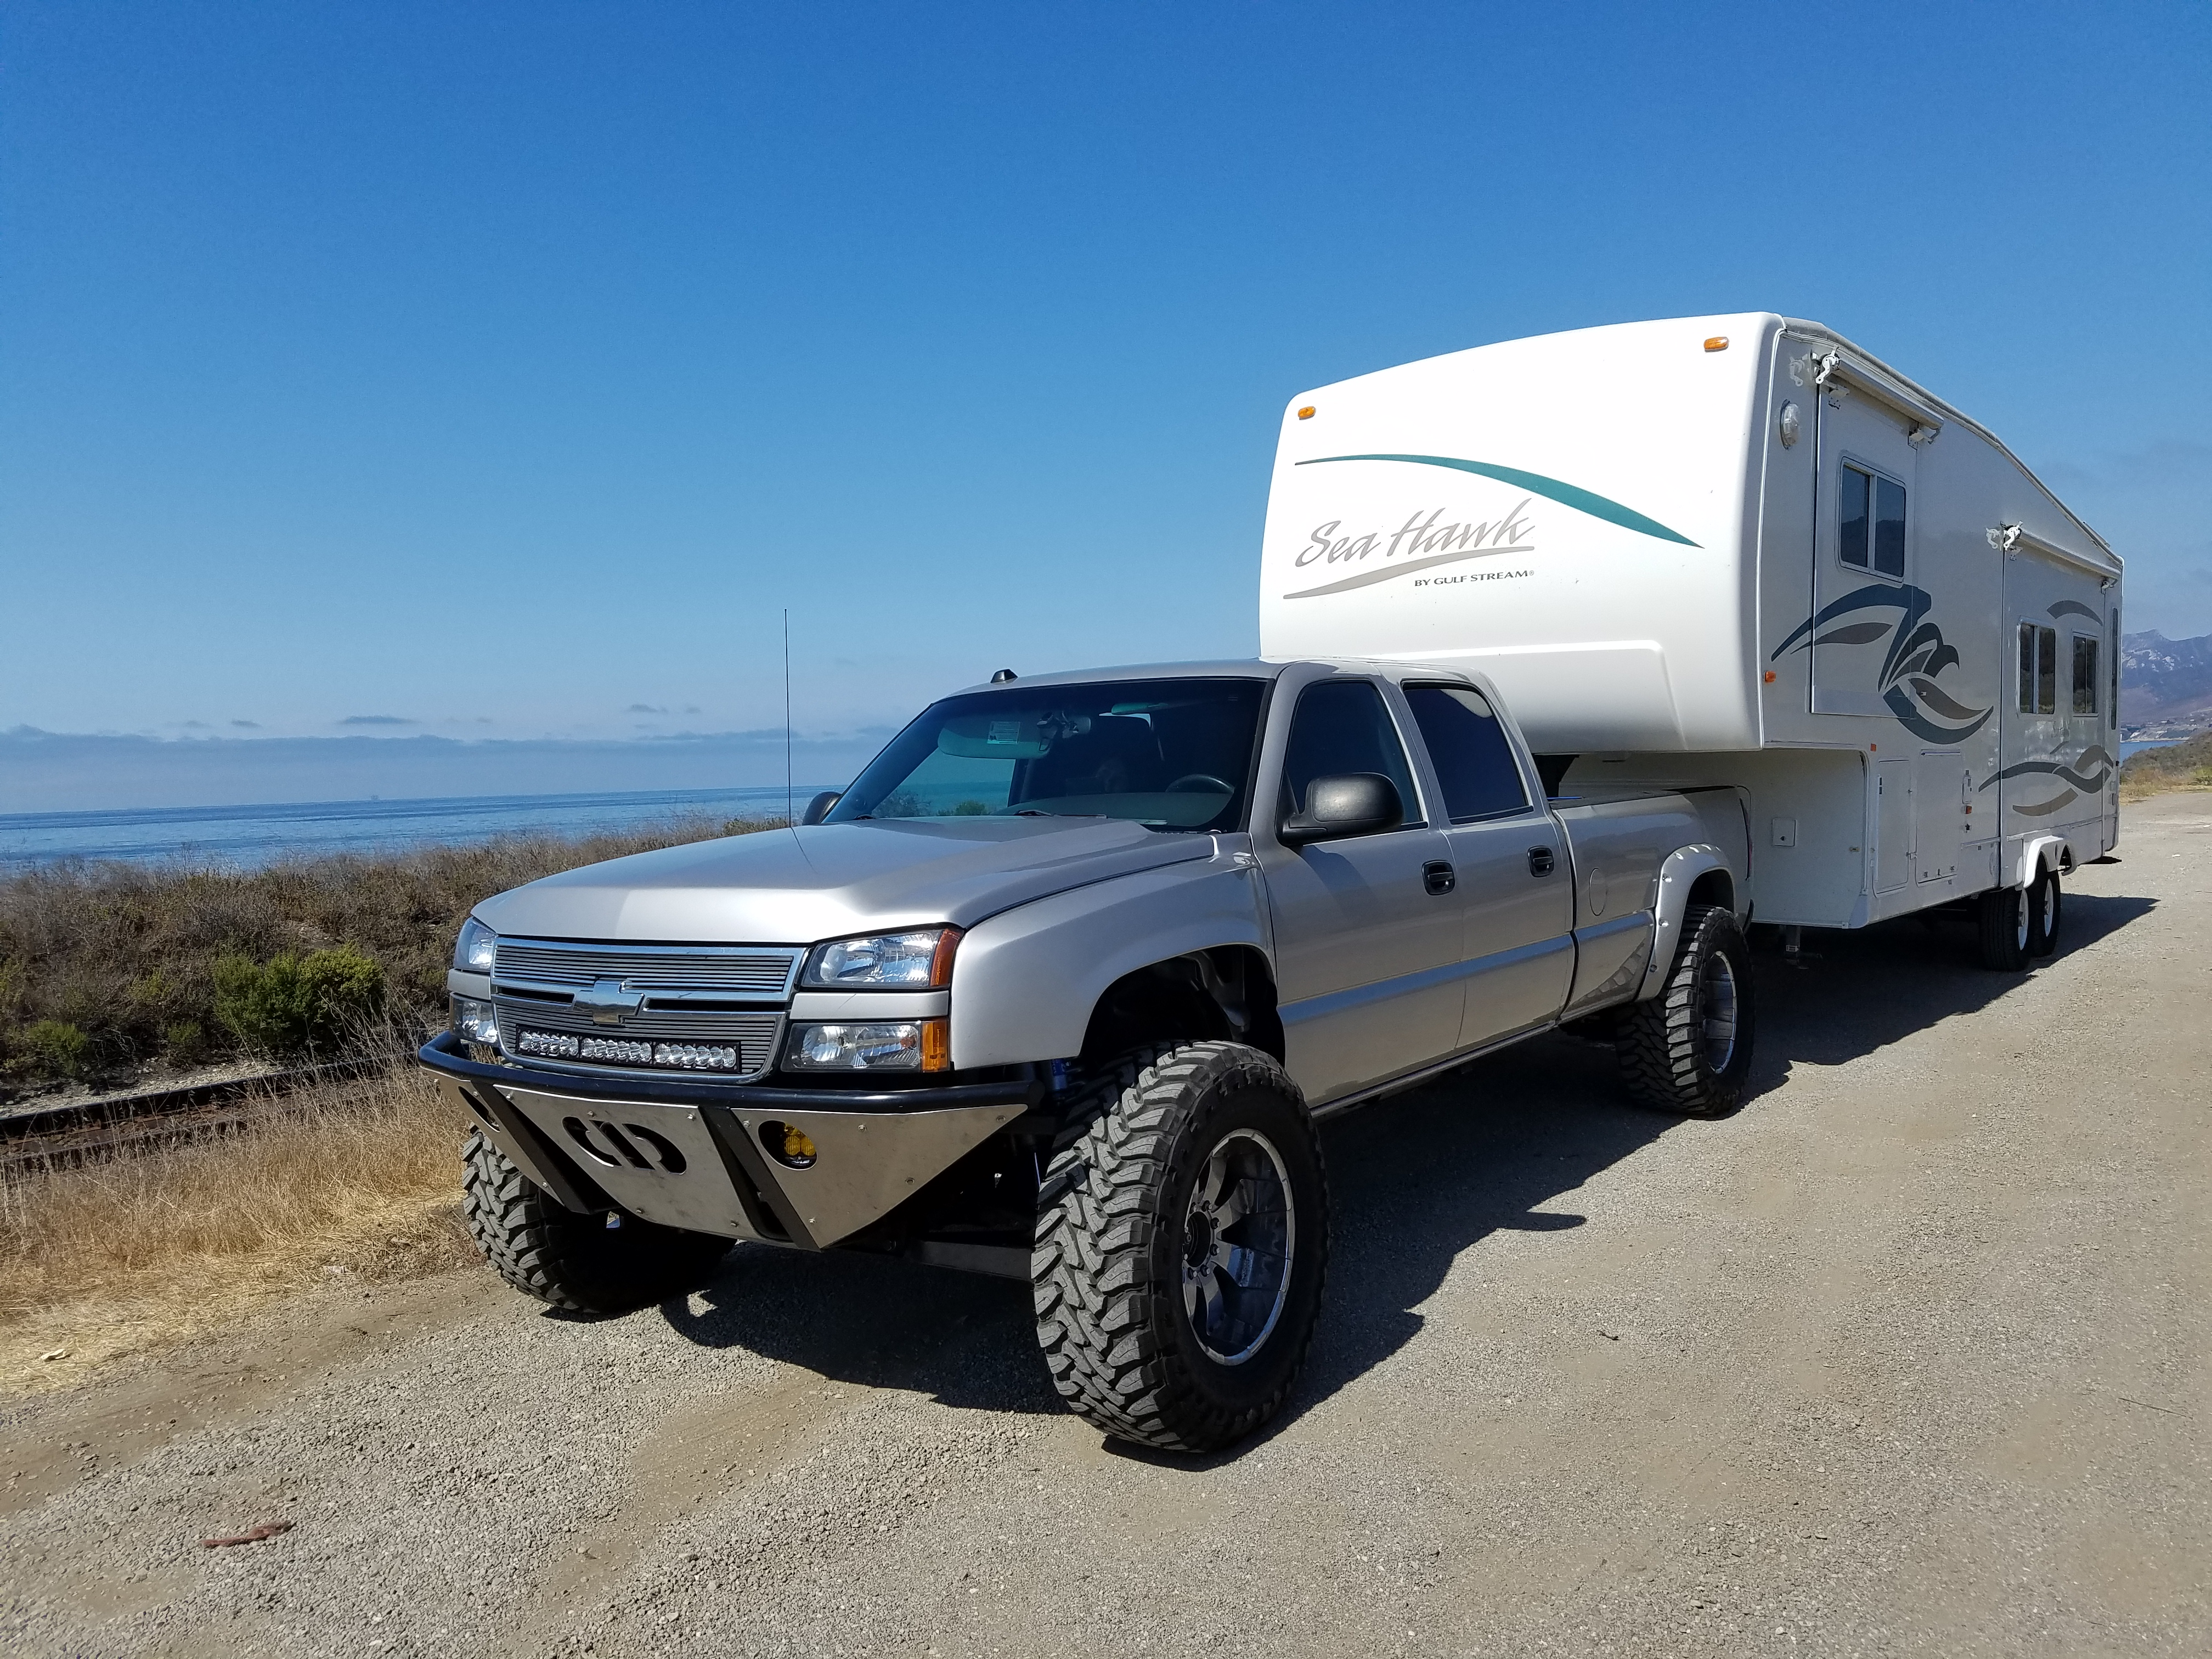 Lifted Chevy Silverado For Sale >> Classified | DMAX Store